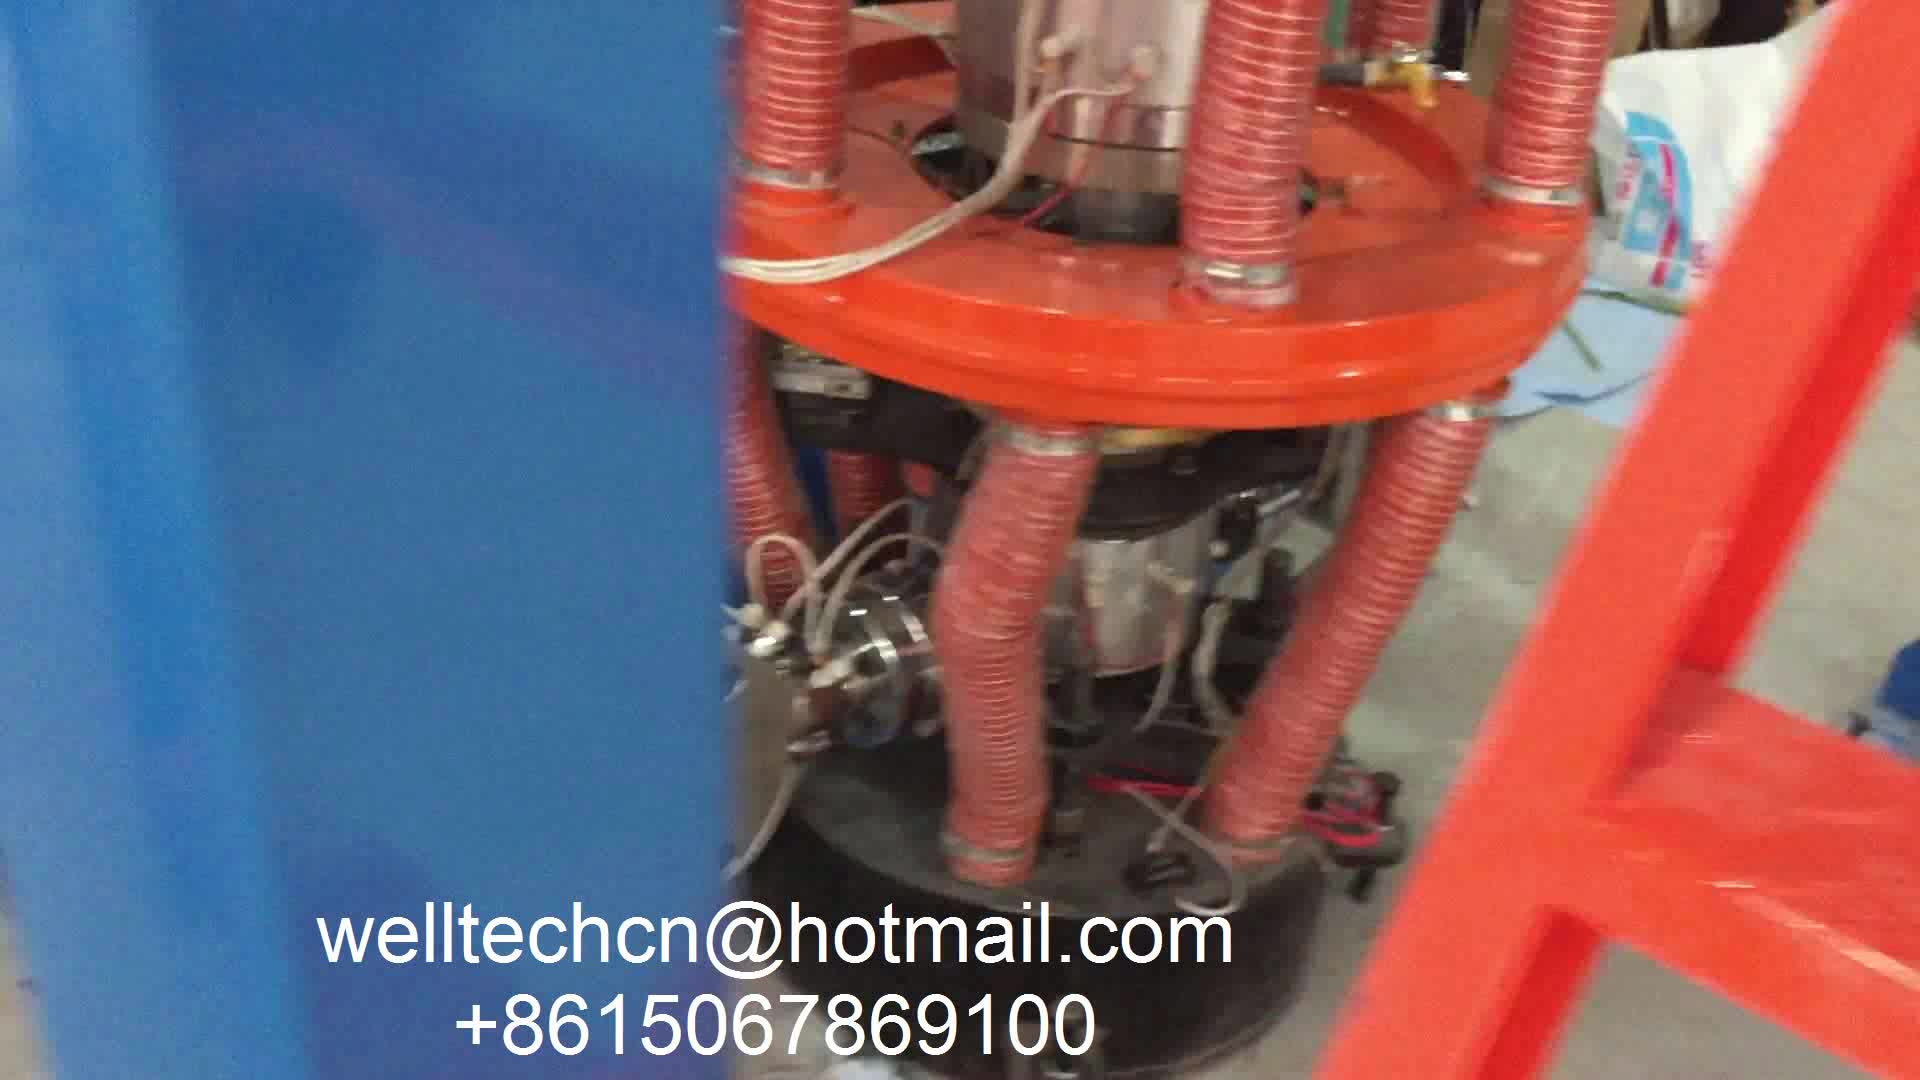 Double Extruders ABA Three-layer Co-extrusion LDPE, HDPE, LLDPE Biodegradable Plastic Film Blowing Machine Price